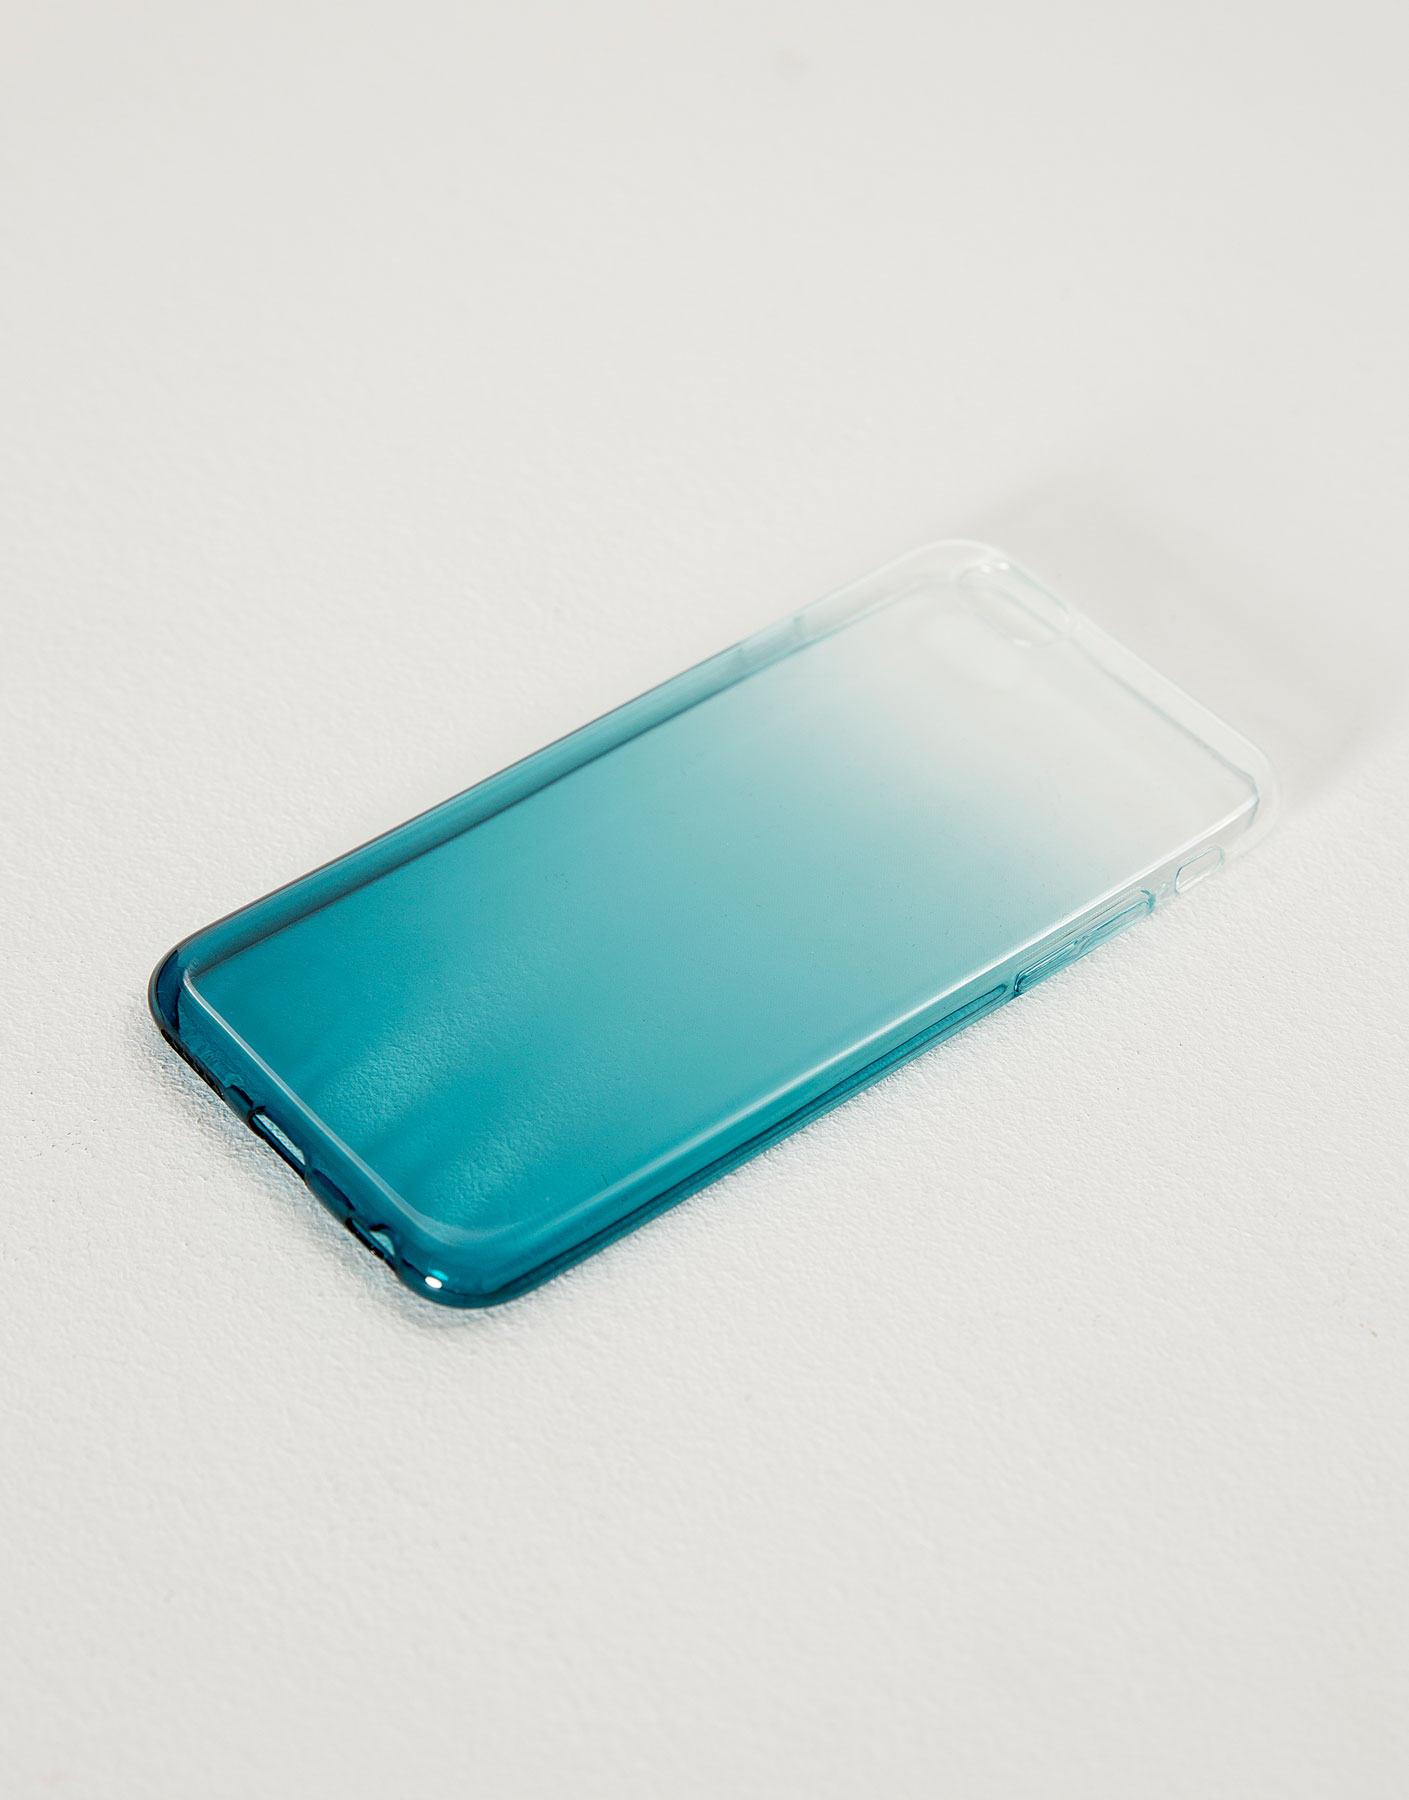 Funda mòbil degradat transparent